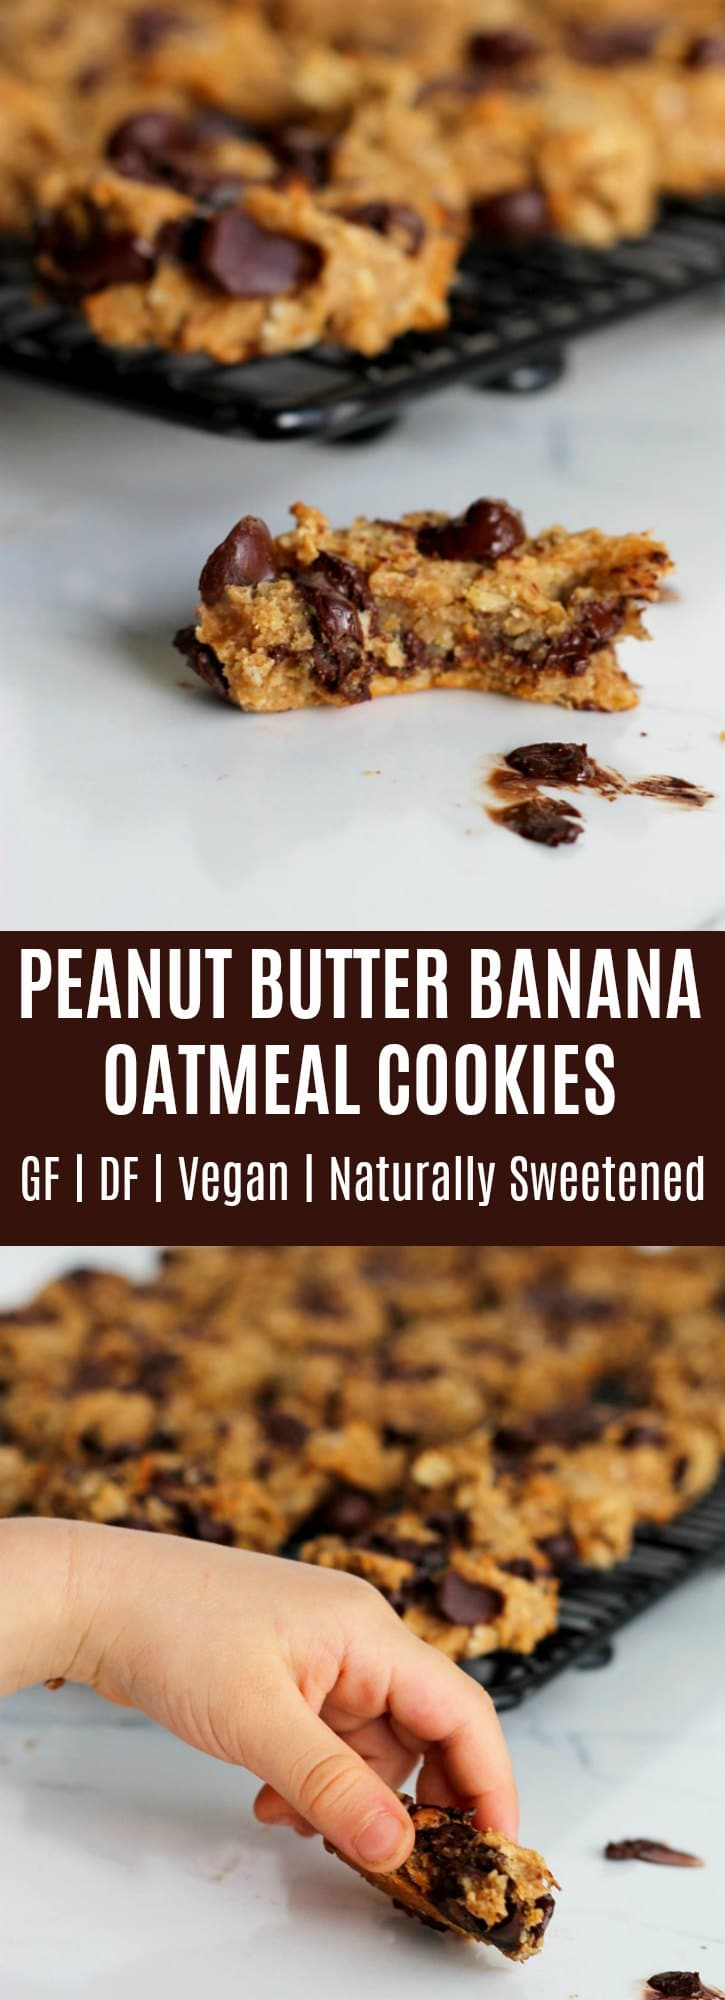 Collage of Peanut Butter Banana Oatmeal Cookies